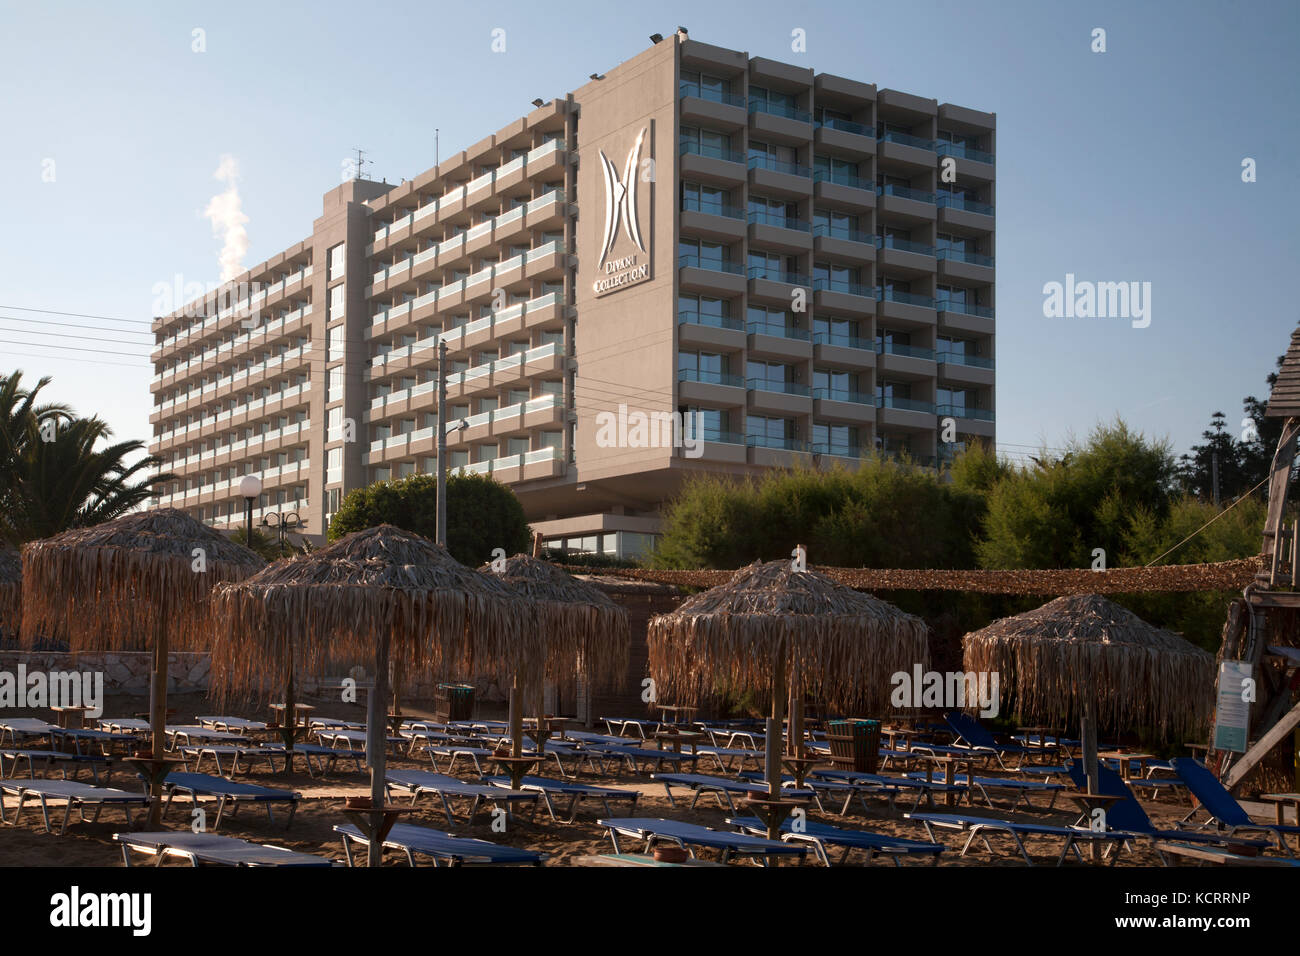 Divani Apollon Suites Hotel Divani Stock Photos And Divani Stock Images Alamy